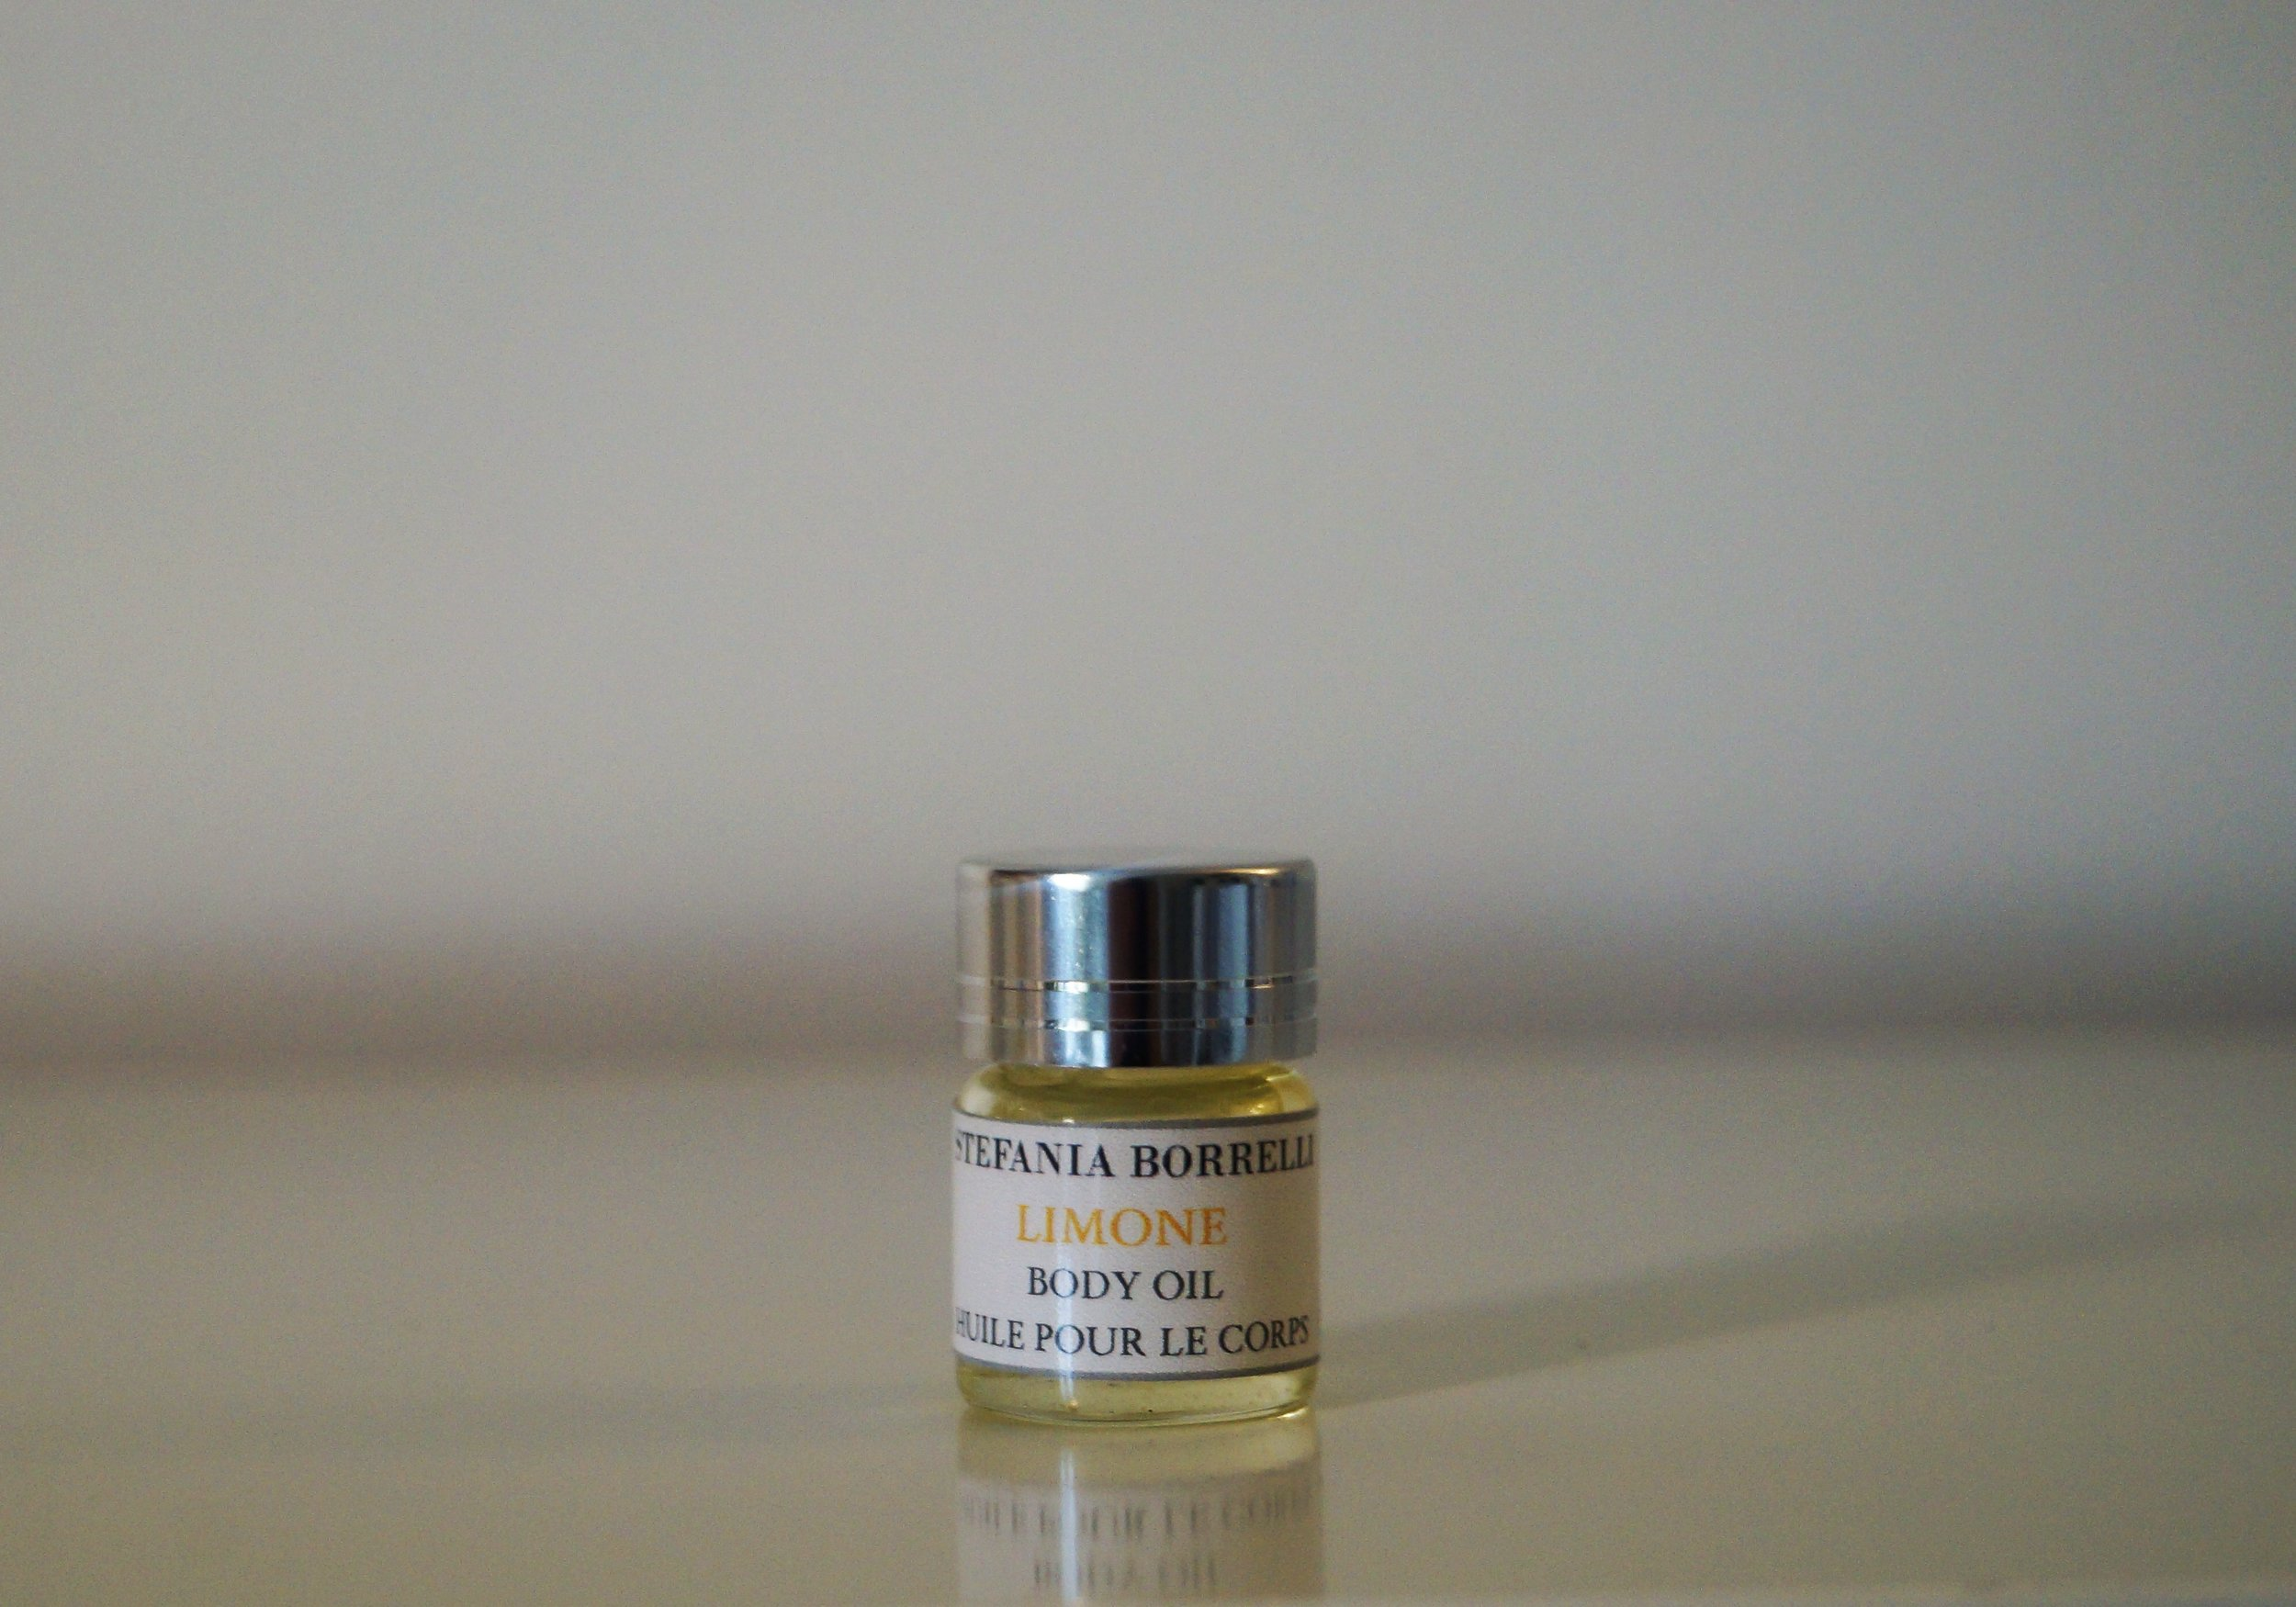 Limone -Lemon from Sicily  Aroma: Intense, lemon-fresh aroma with a zesty, tangy/tart top note.